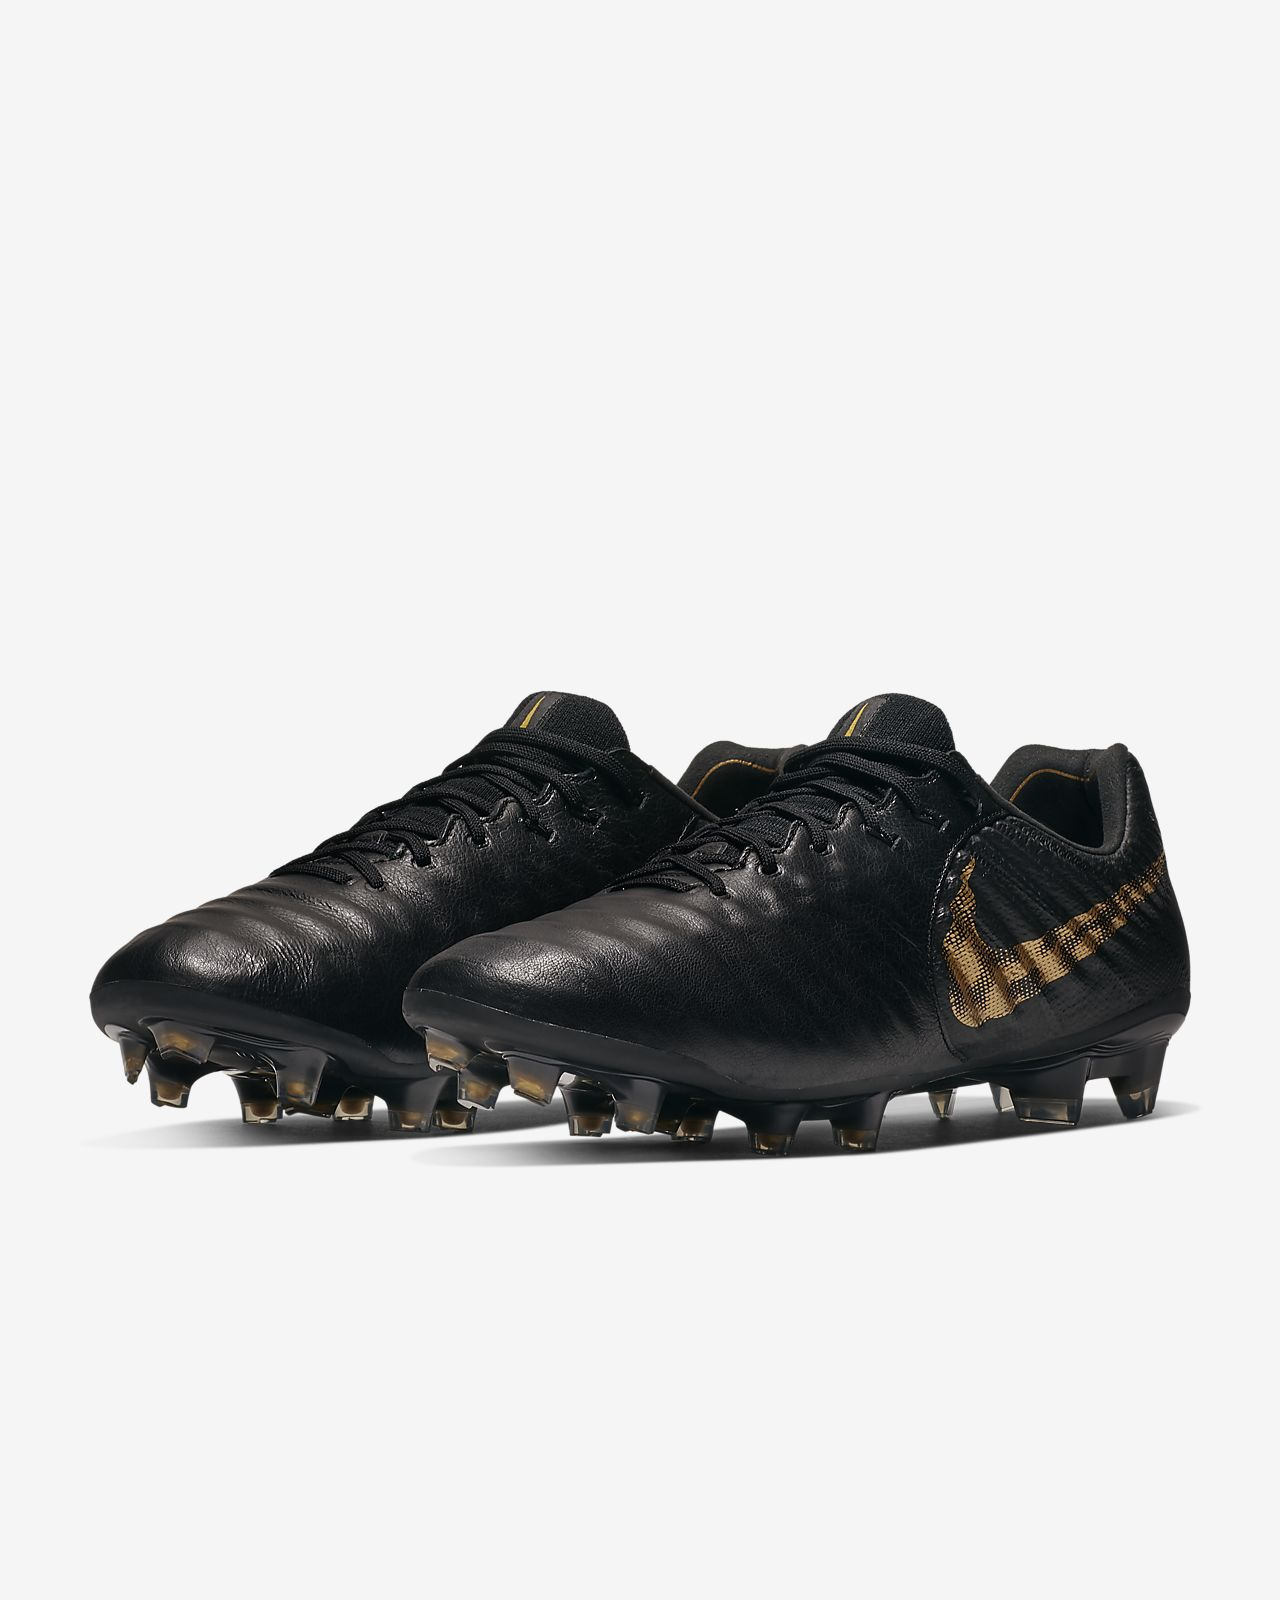 63419672a Nike Tiempo Legend 7 Elite FG Firm-Ground Football Boot. Nike.com IN